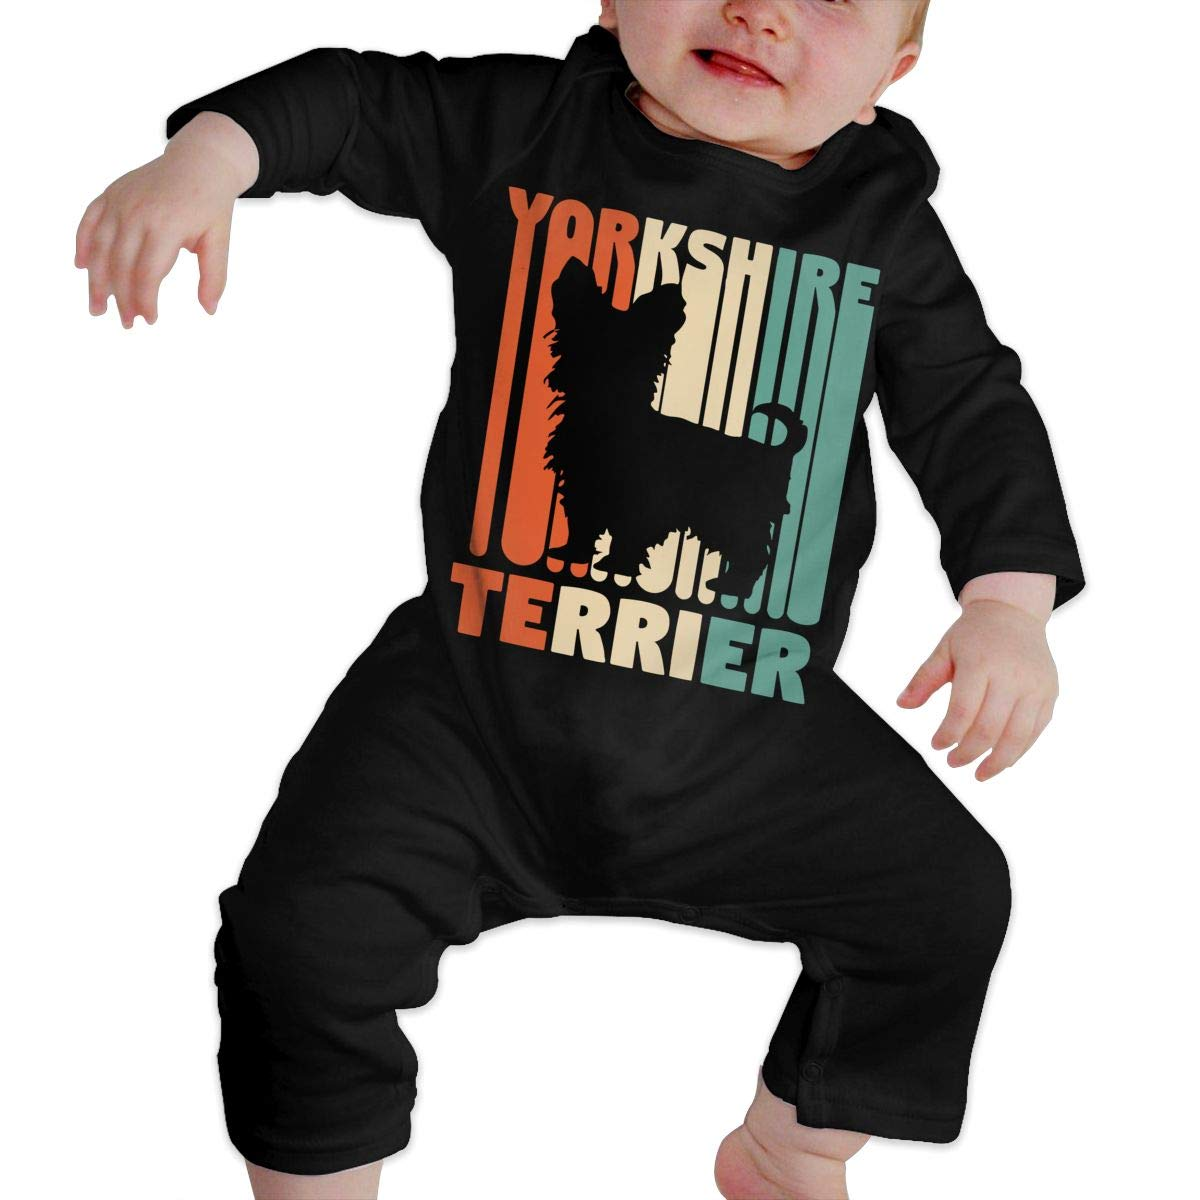 Vintage Yorkshire Terrier Unisex Baby Sleep and Play Bodysuit Jumpsuit Outfits